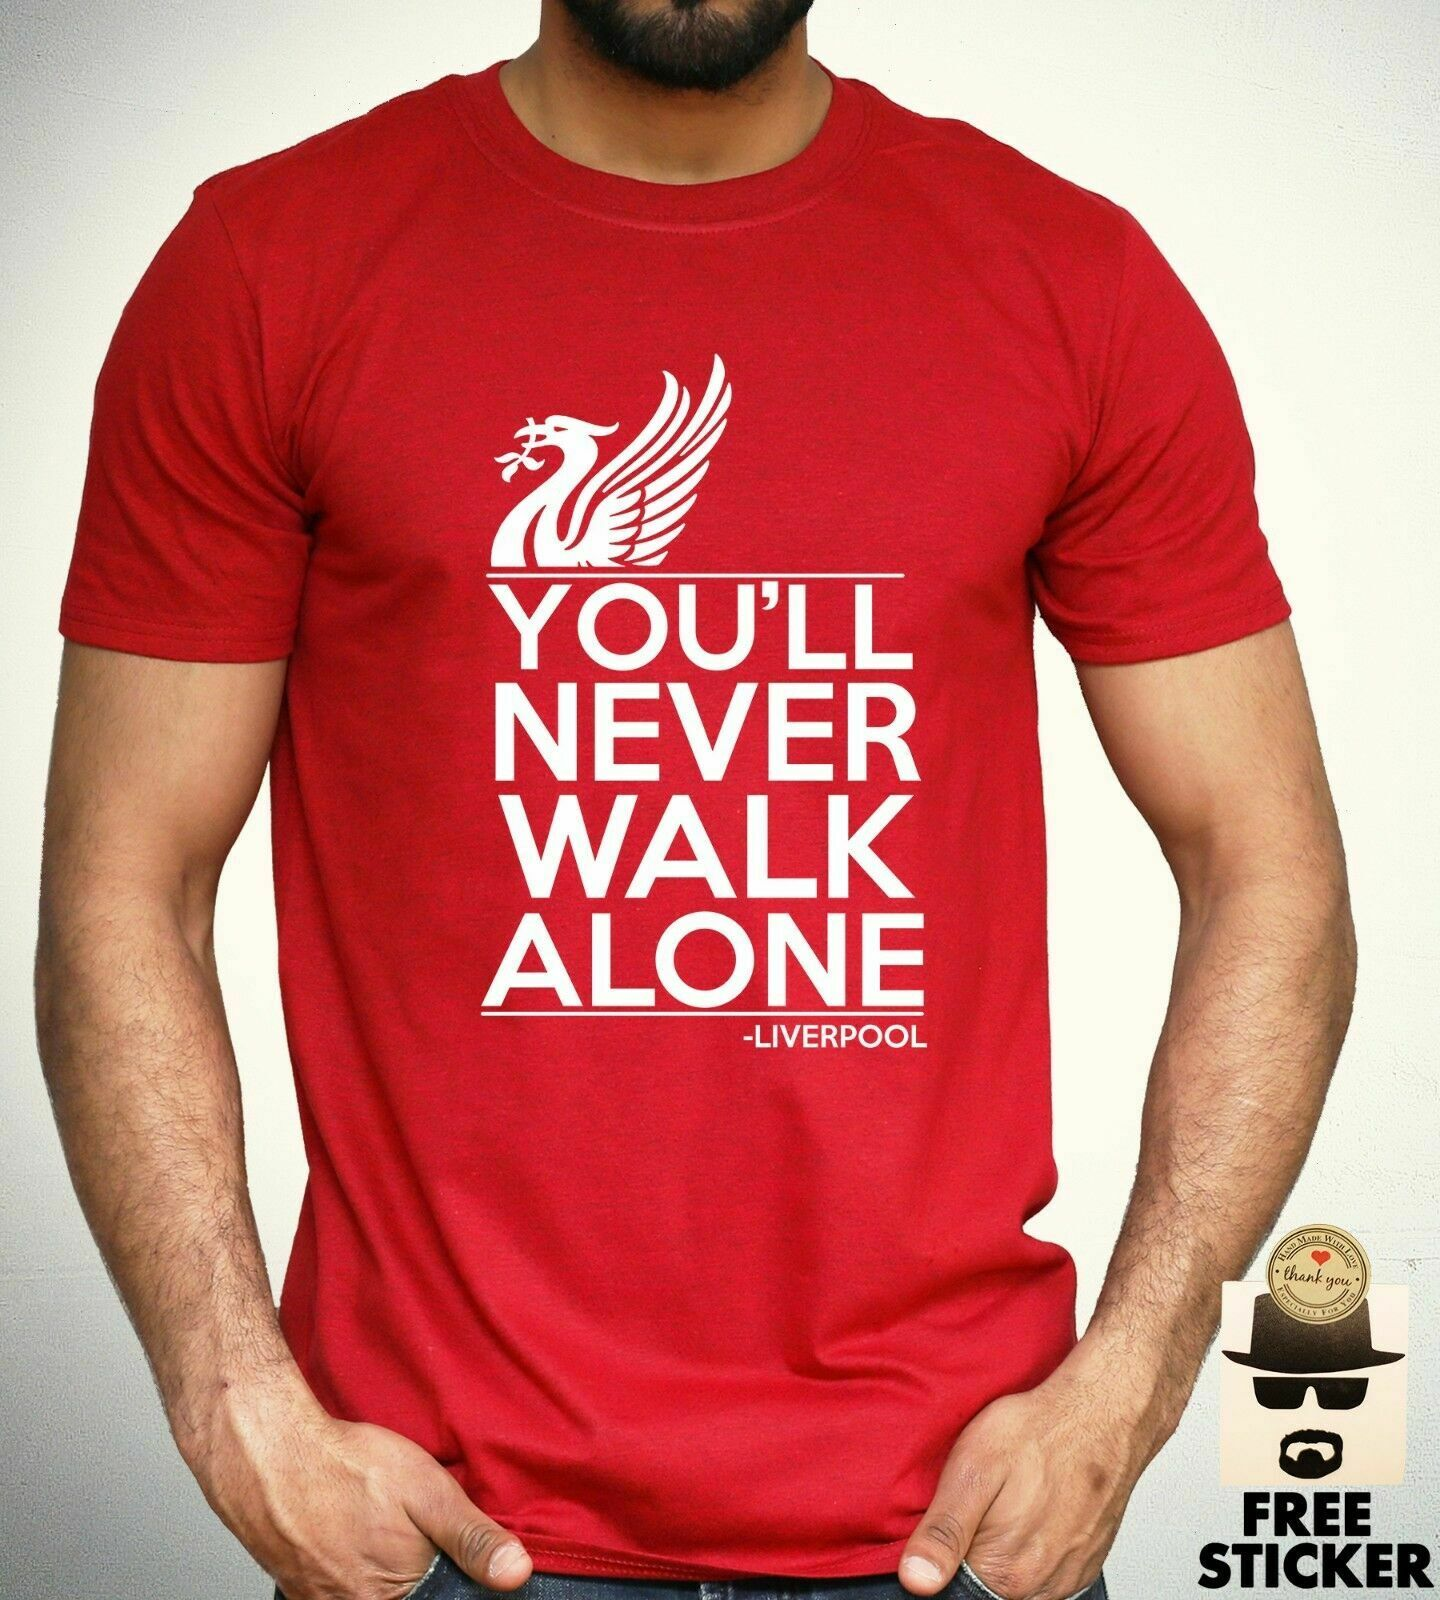 Liverpool   T     Shirt   you'll never walk alone Football Fan Club YNWA Mens Gift Tee Comfortable   t     shirt  ,Casual Short Sleeve TEE